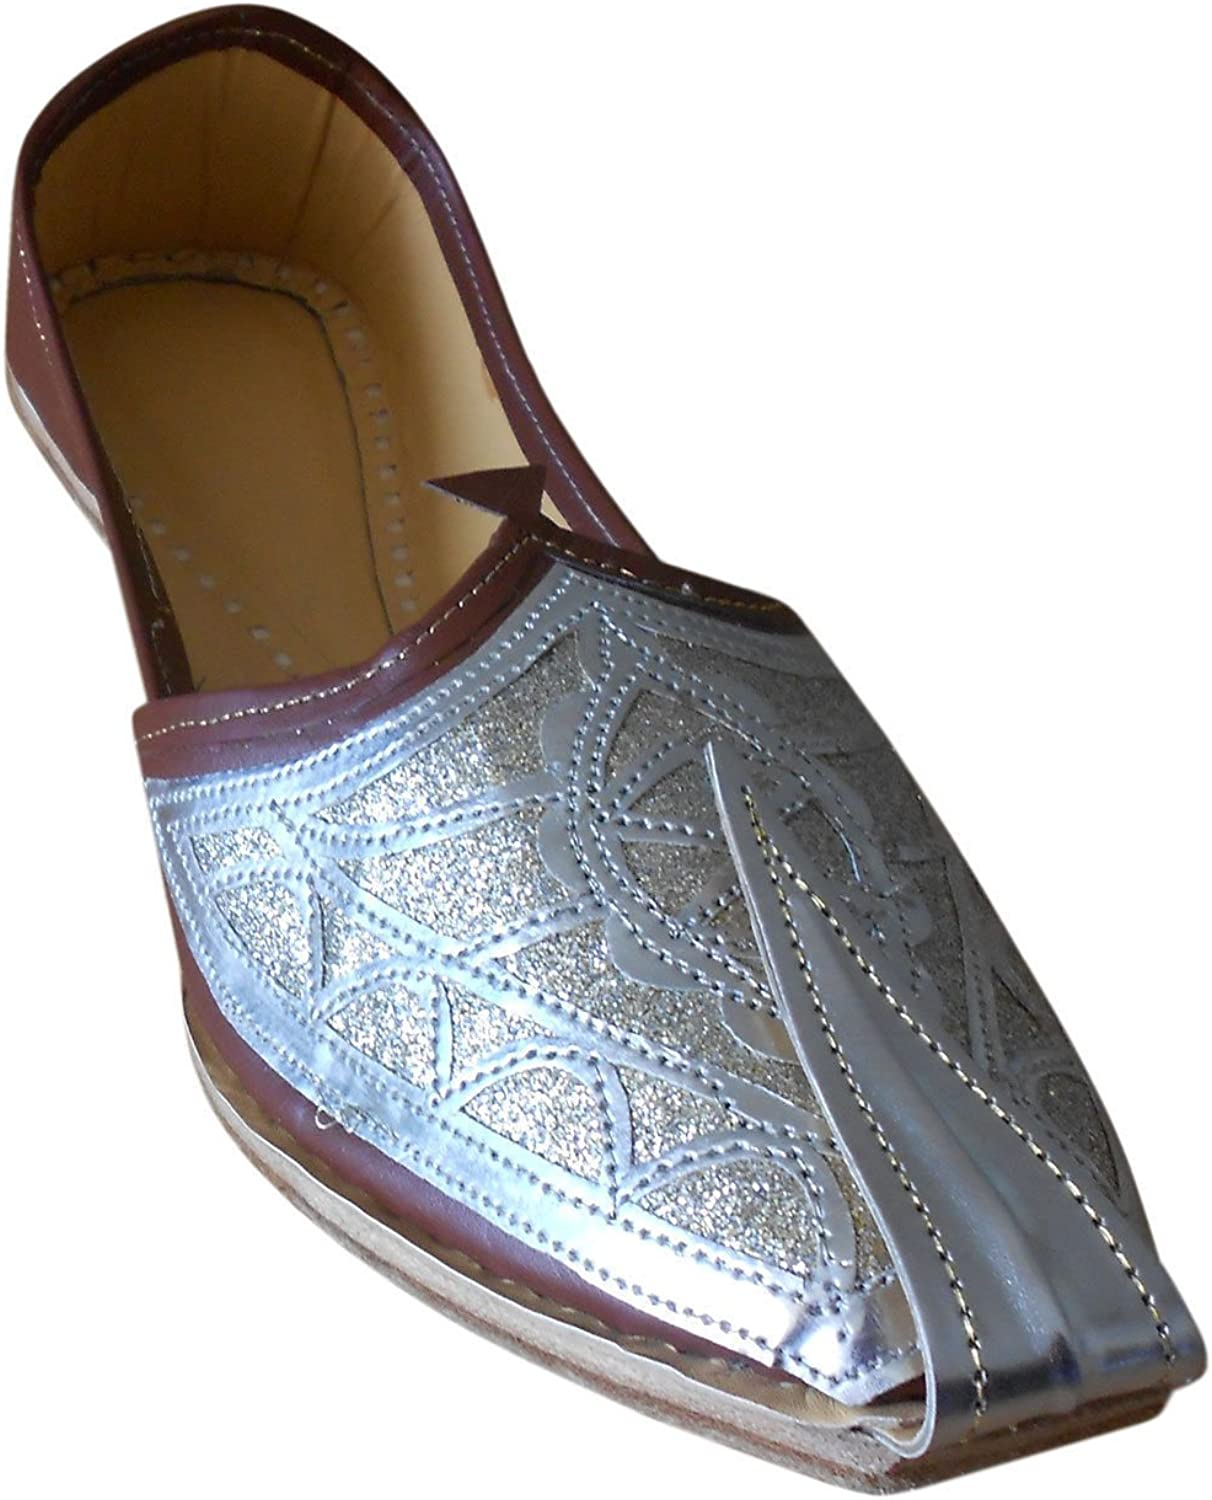 Kalra Creations Men's Traditional Indian Faux Leather Casual shoes